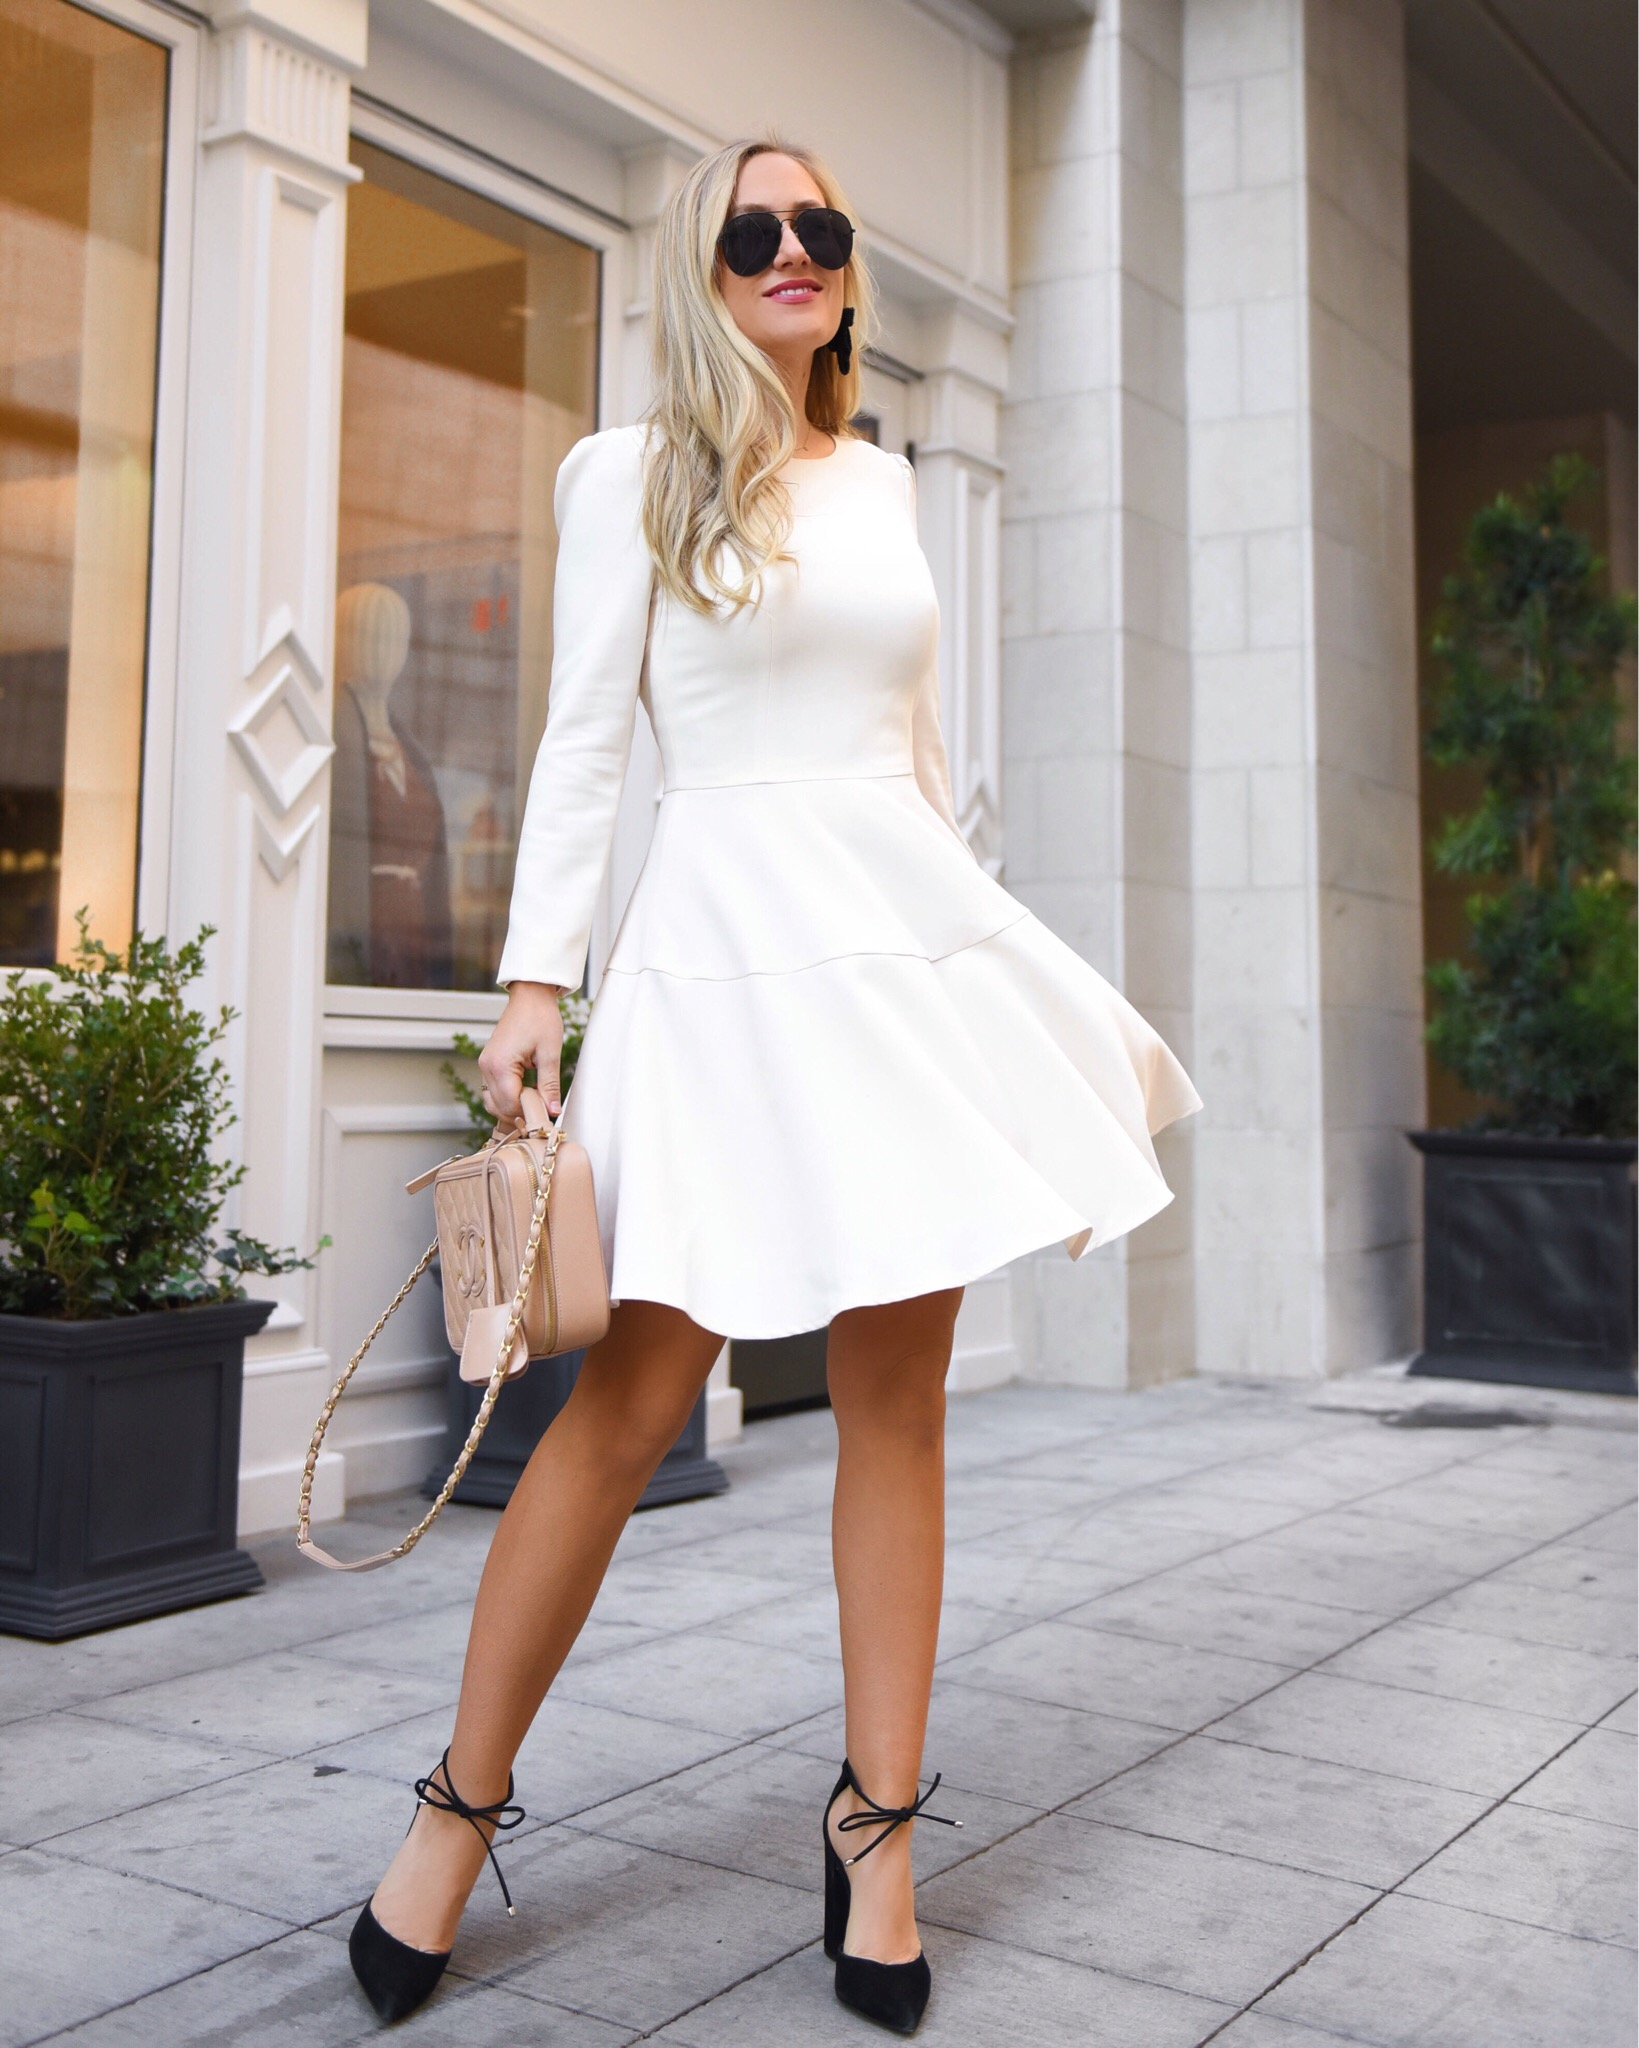 Thanksgiving-Outfit-Ideas-LWD-White-Dress-Winter-White-Lo-Murphy-Chanel-Handbag-Gal-Meets-Glam-Dress